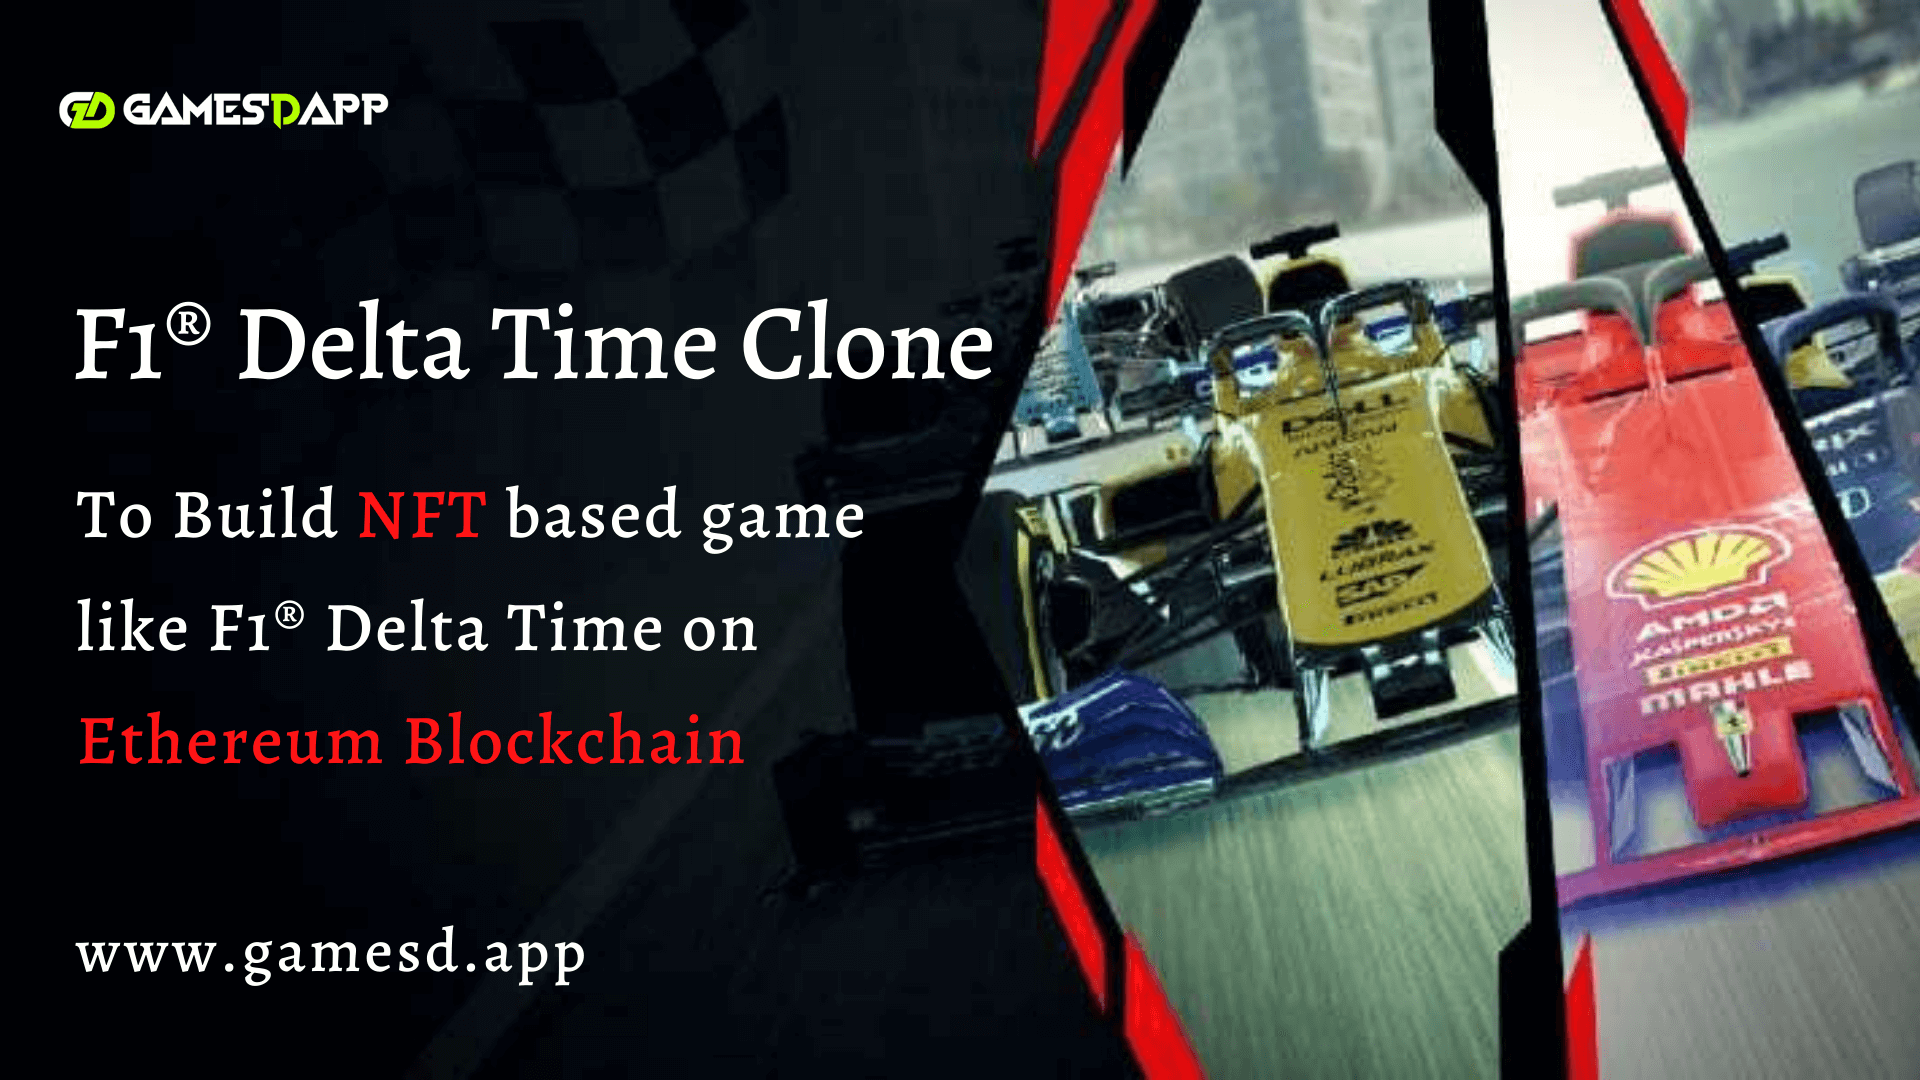 F1® Delta Time Clone - Build NFT based game like F1® Delta Time on Ethereum Blockchain